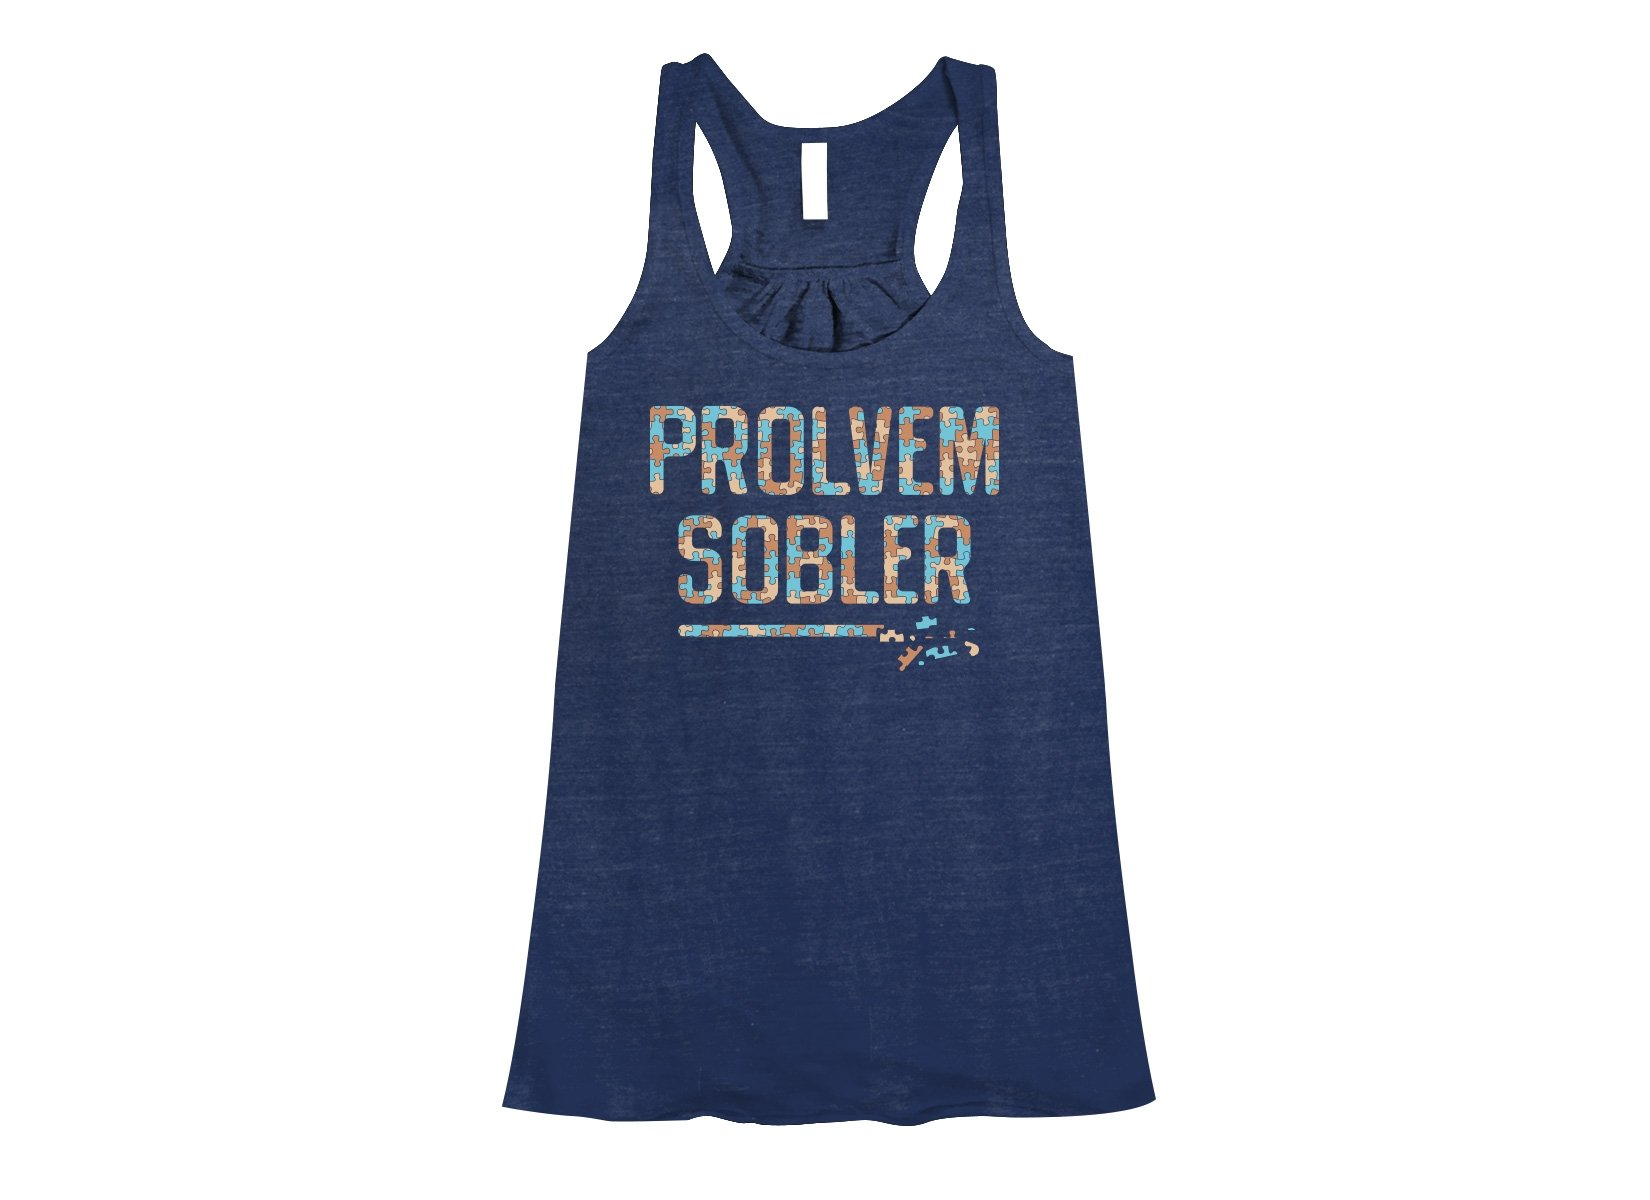 Prolvem Sobler on Womens Tanks T-Shirt